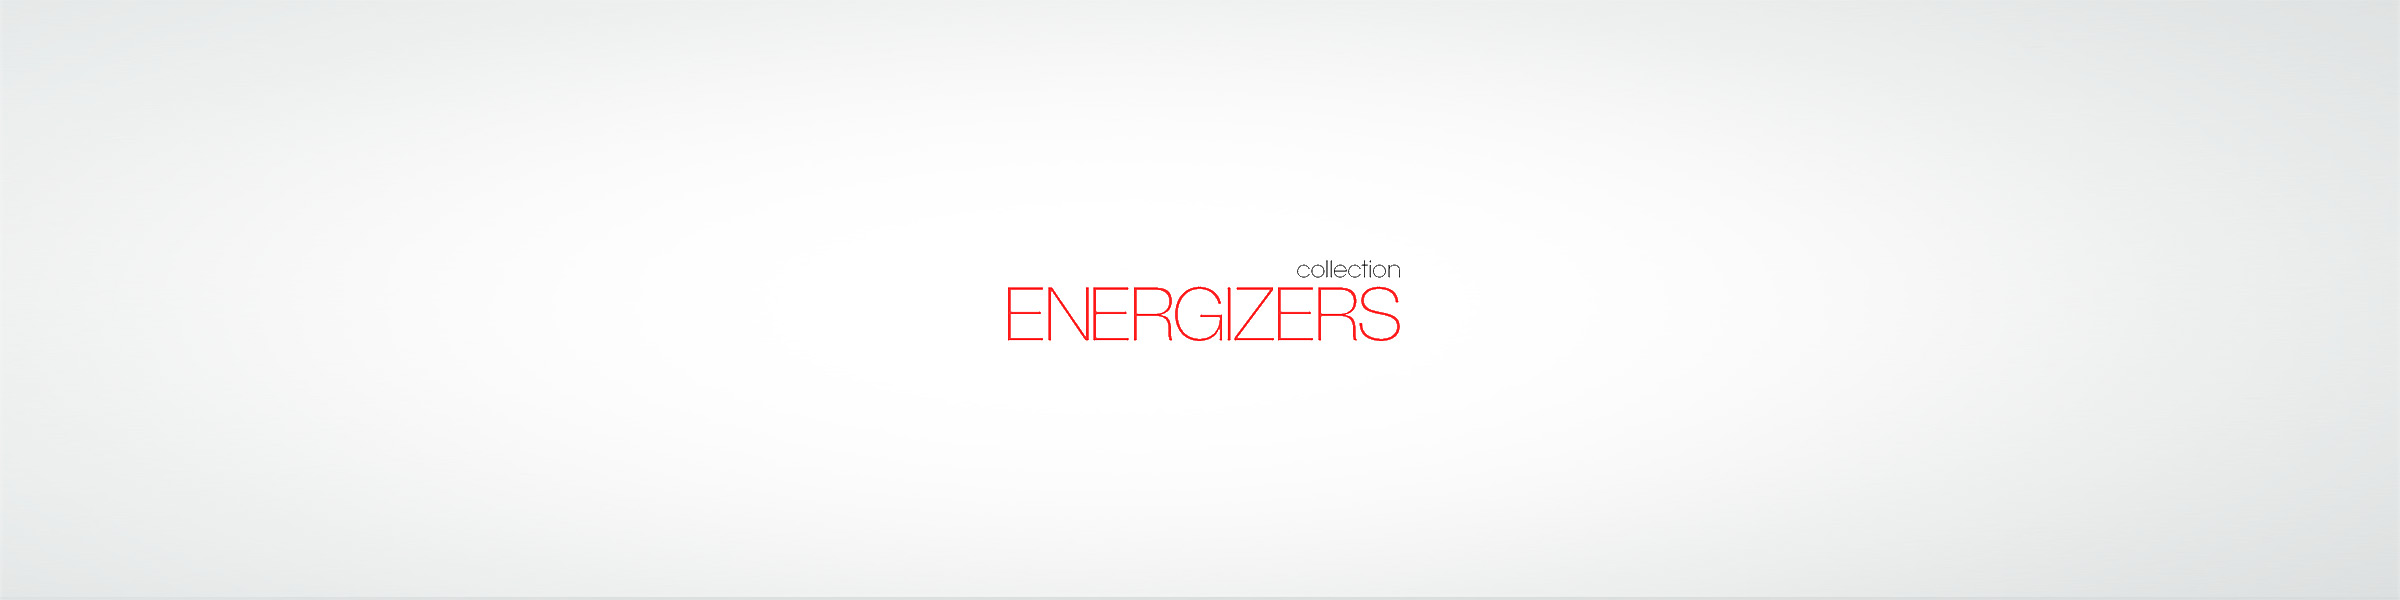 031636 ENERGIZERS